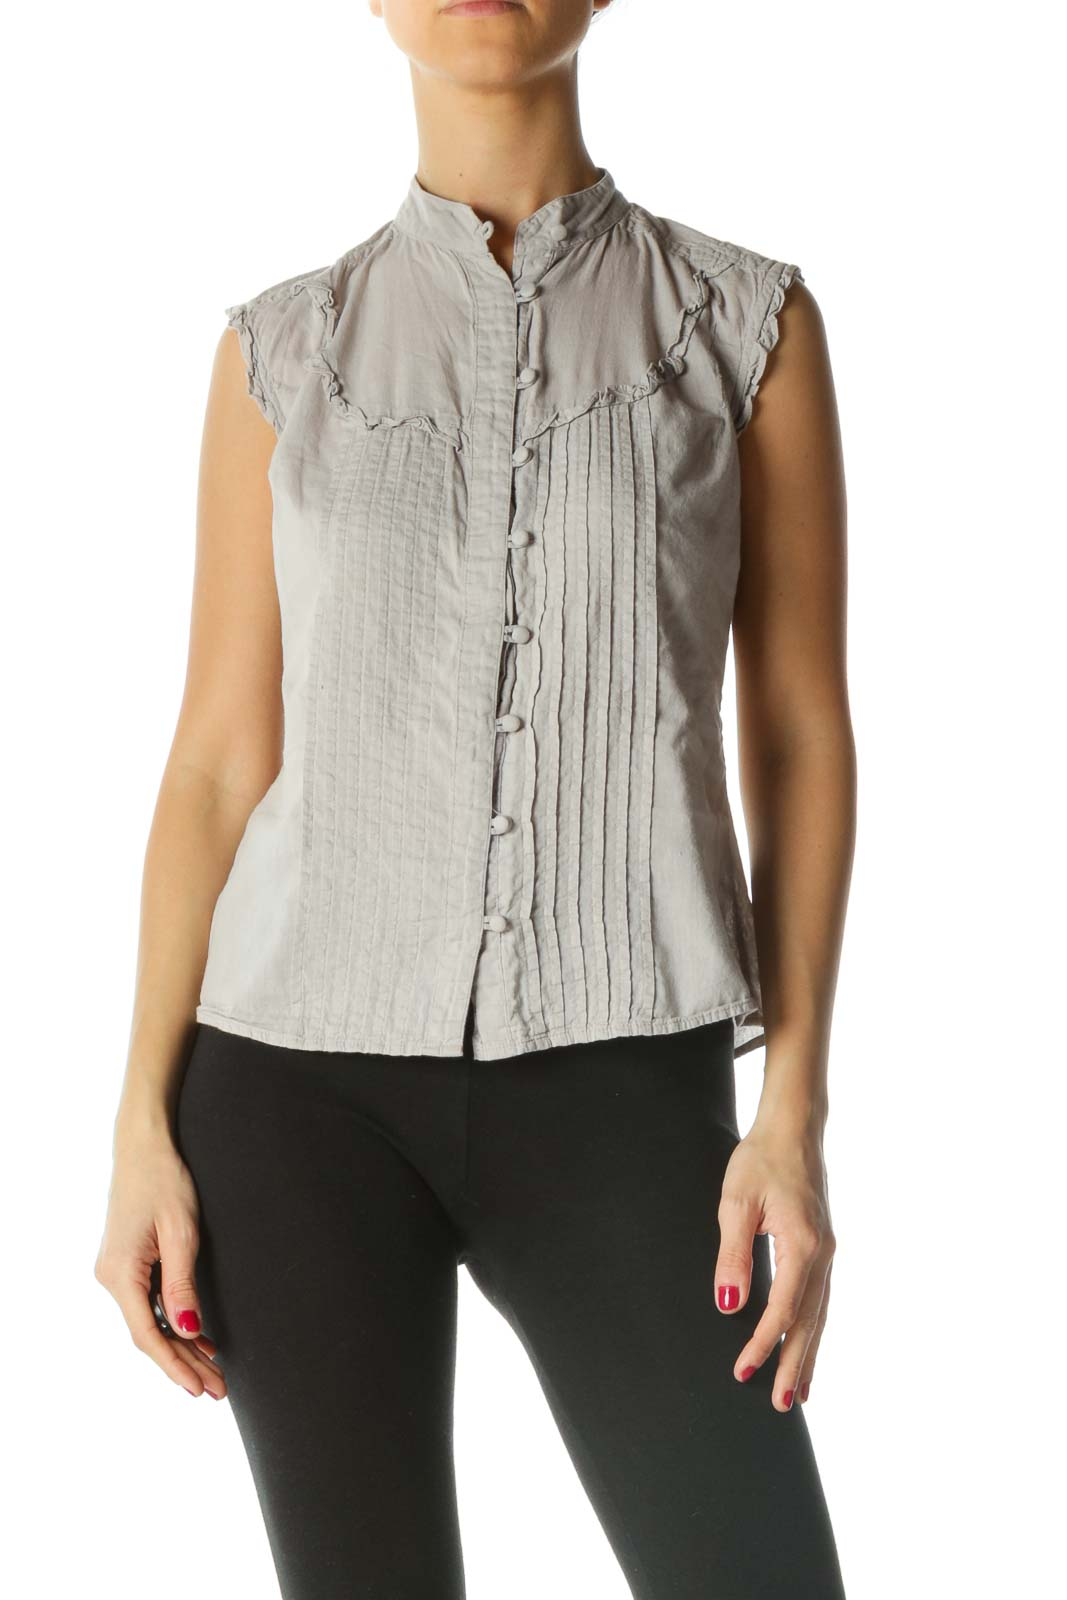 Gray Pleated Ruffle Detail Knit Sleeveless Top Front